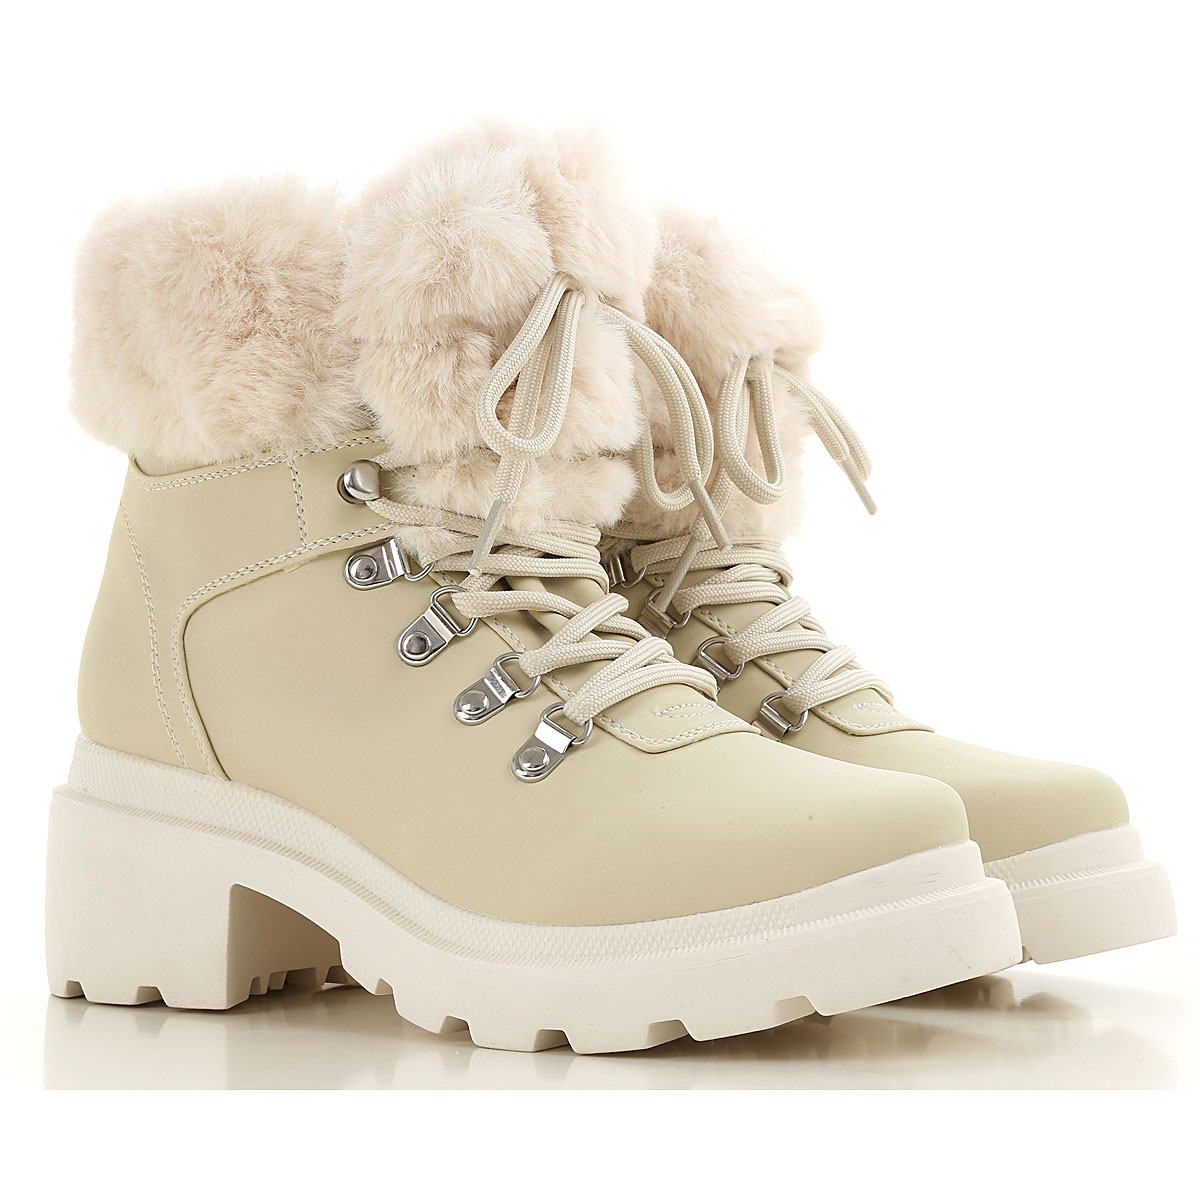 Kendall Kylie Boots for Women, Booties On Sale, Ivory, Fabric, 2019, 8 9